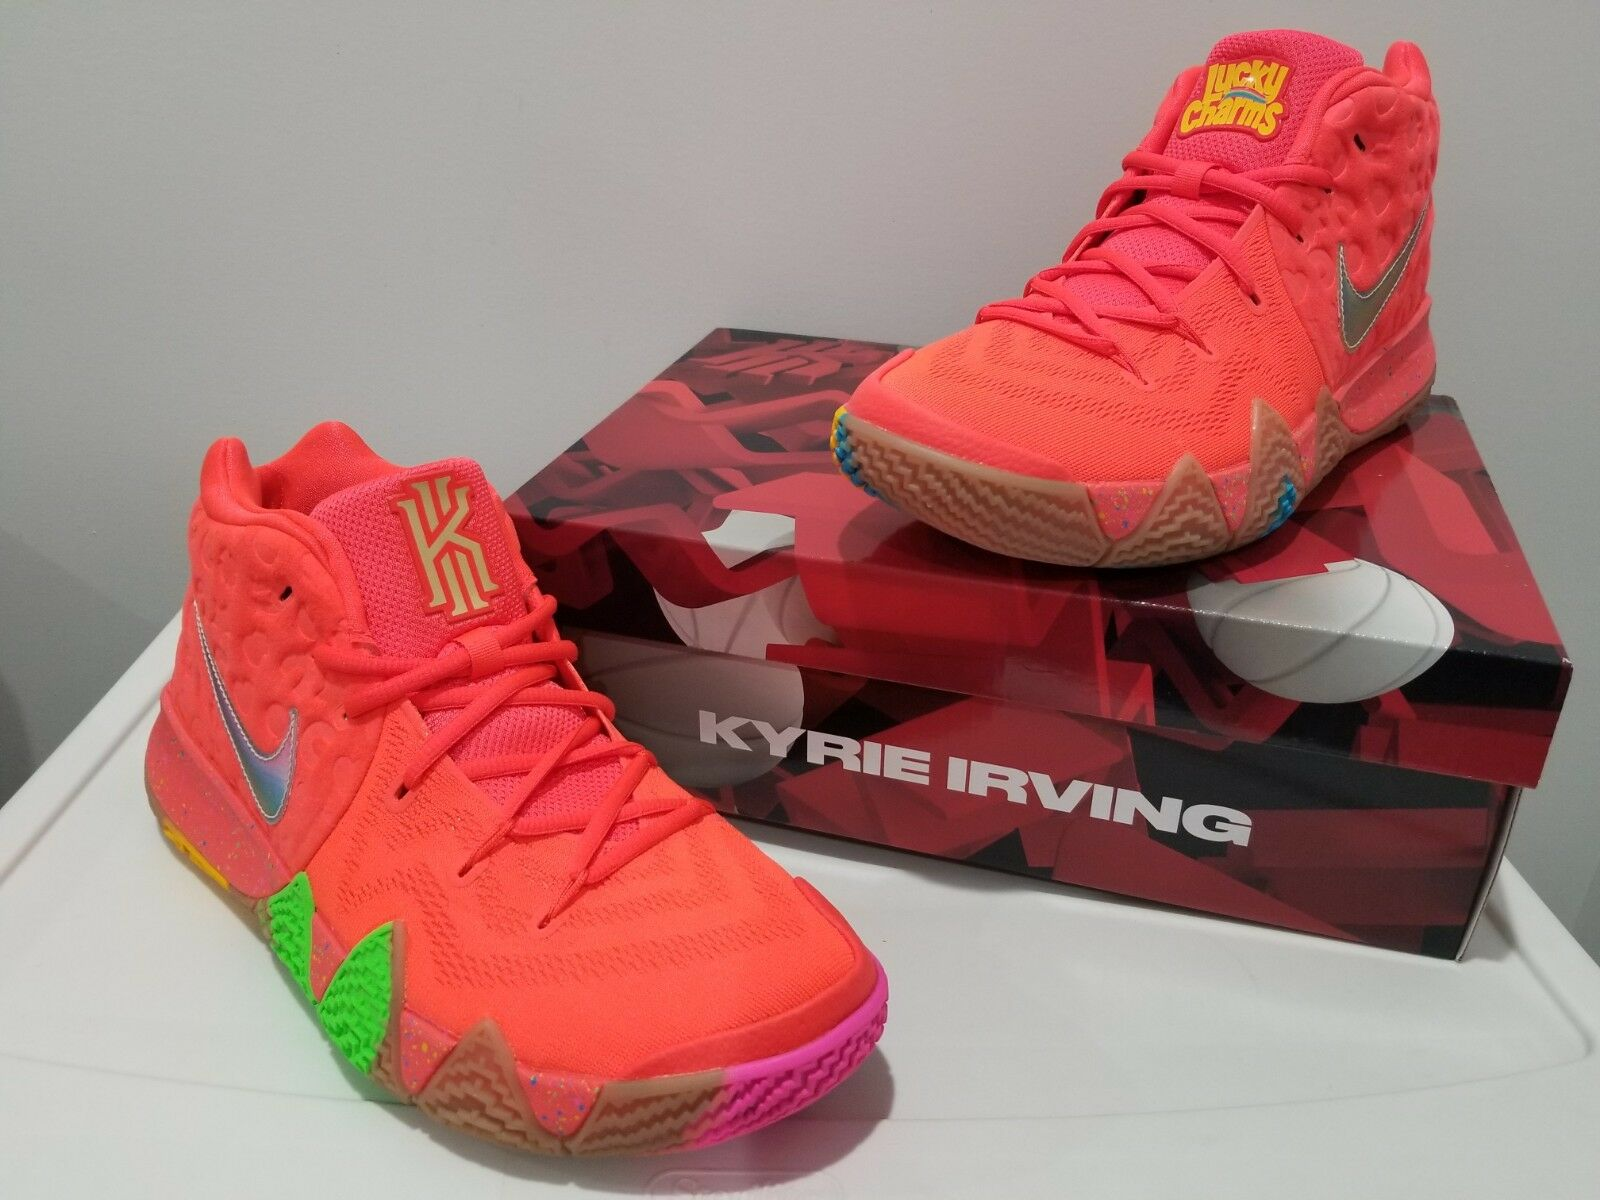 New 2018 Nike Kyrie 4 Lucky Lucky Lucky Charms BV0428-600 Cereal Pack Mens shoes DS Size 11 614472